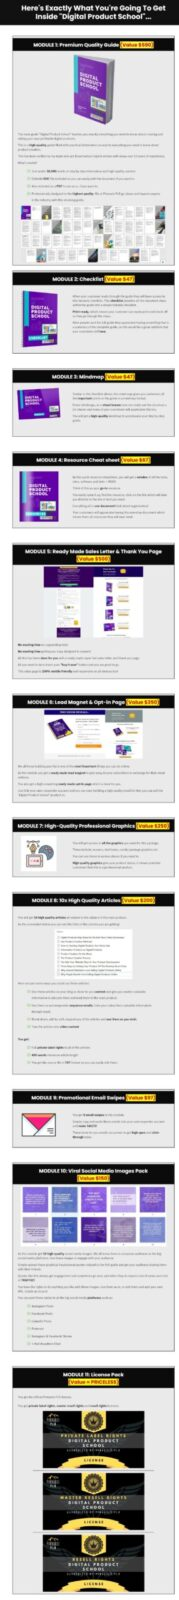 Brand NEW Premium Quality Done For You PLR Sales Funnel You Can Rebrand And Sell As Your Own Starting Today!